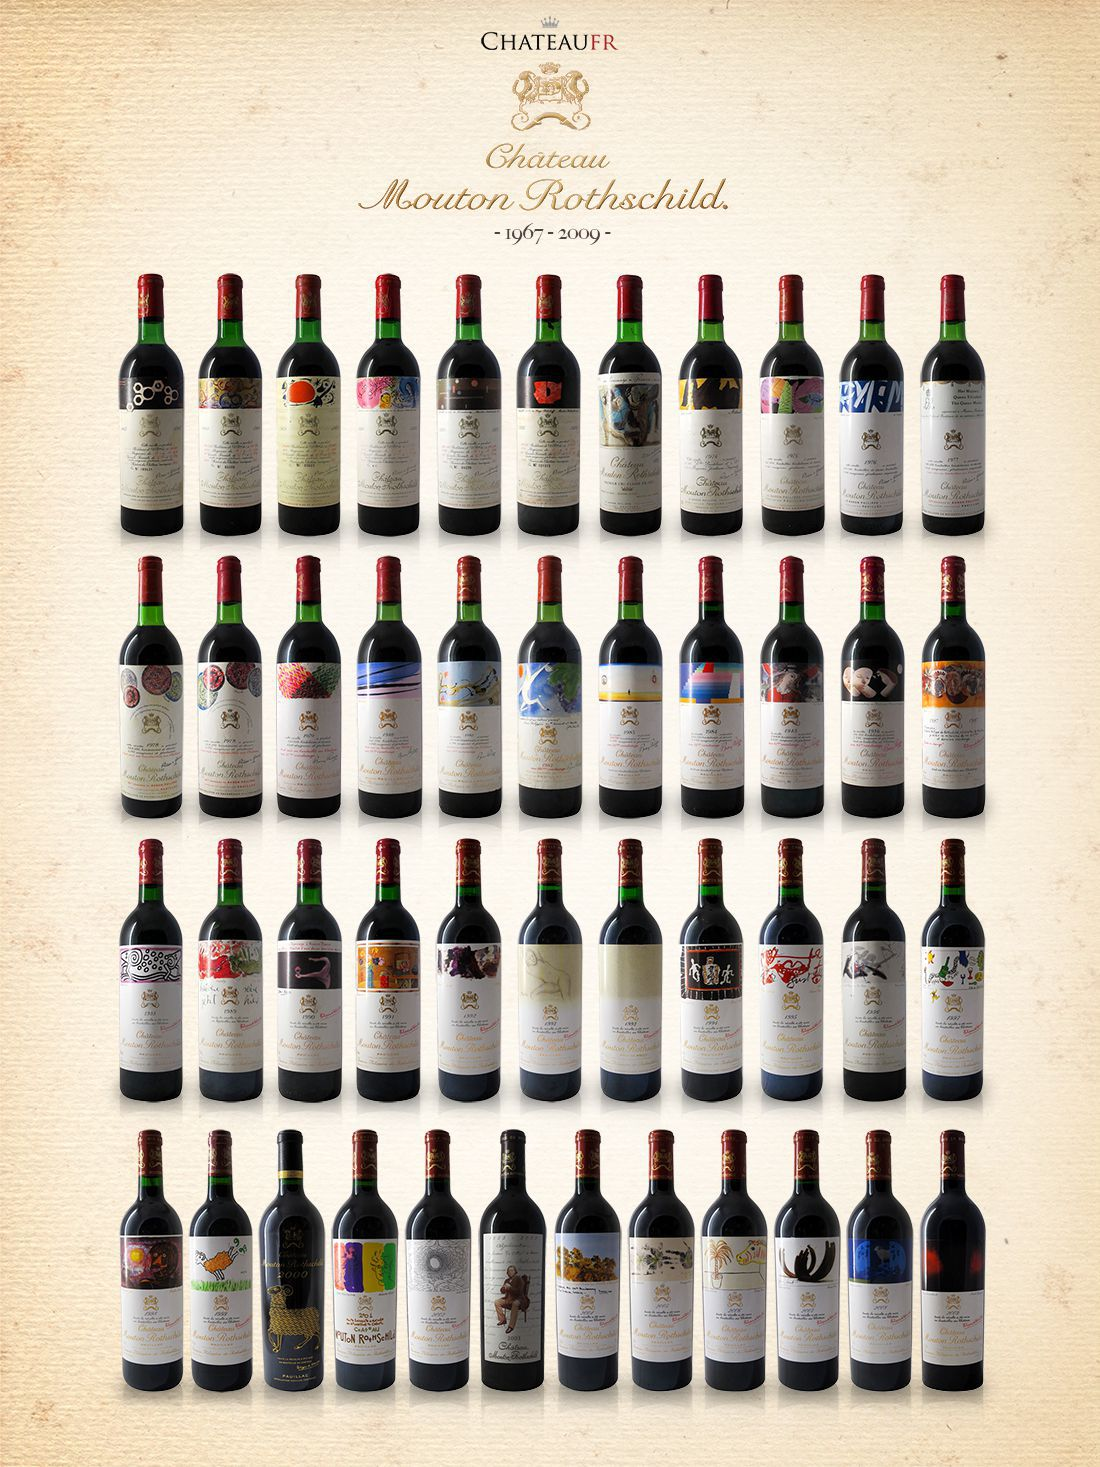 Collection Château Mouton Rothschild 1967-2009